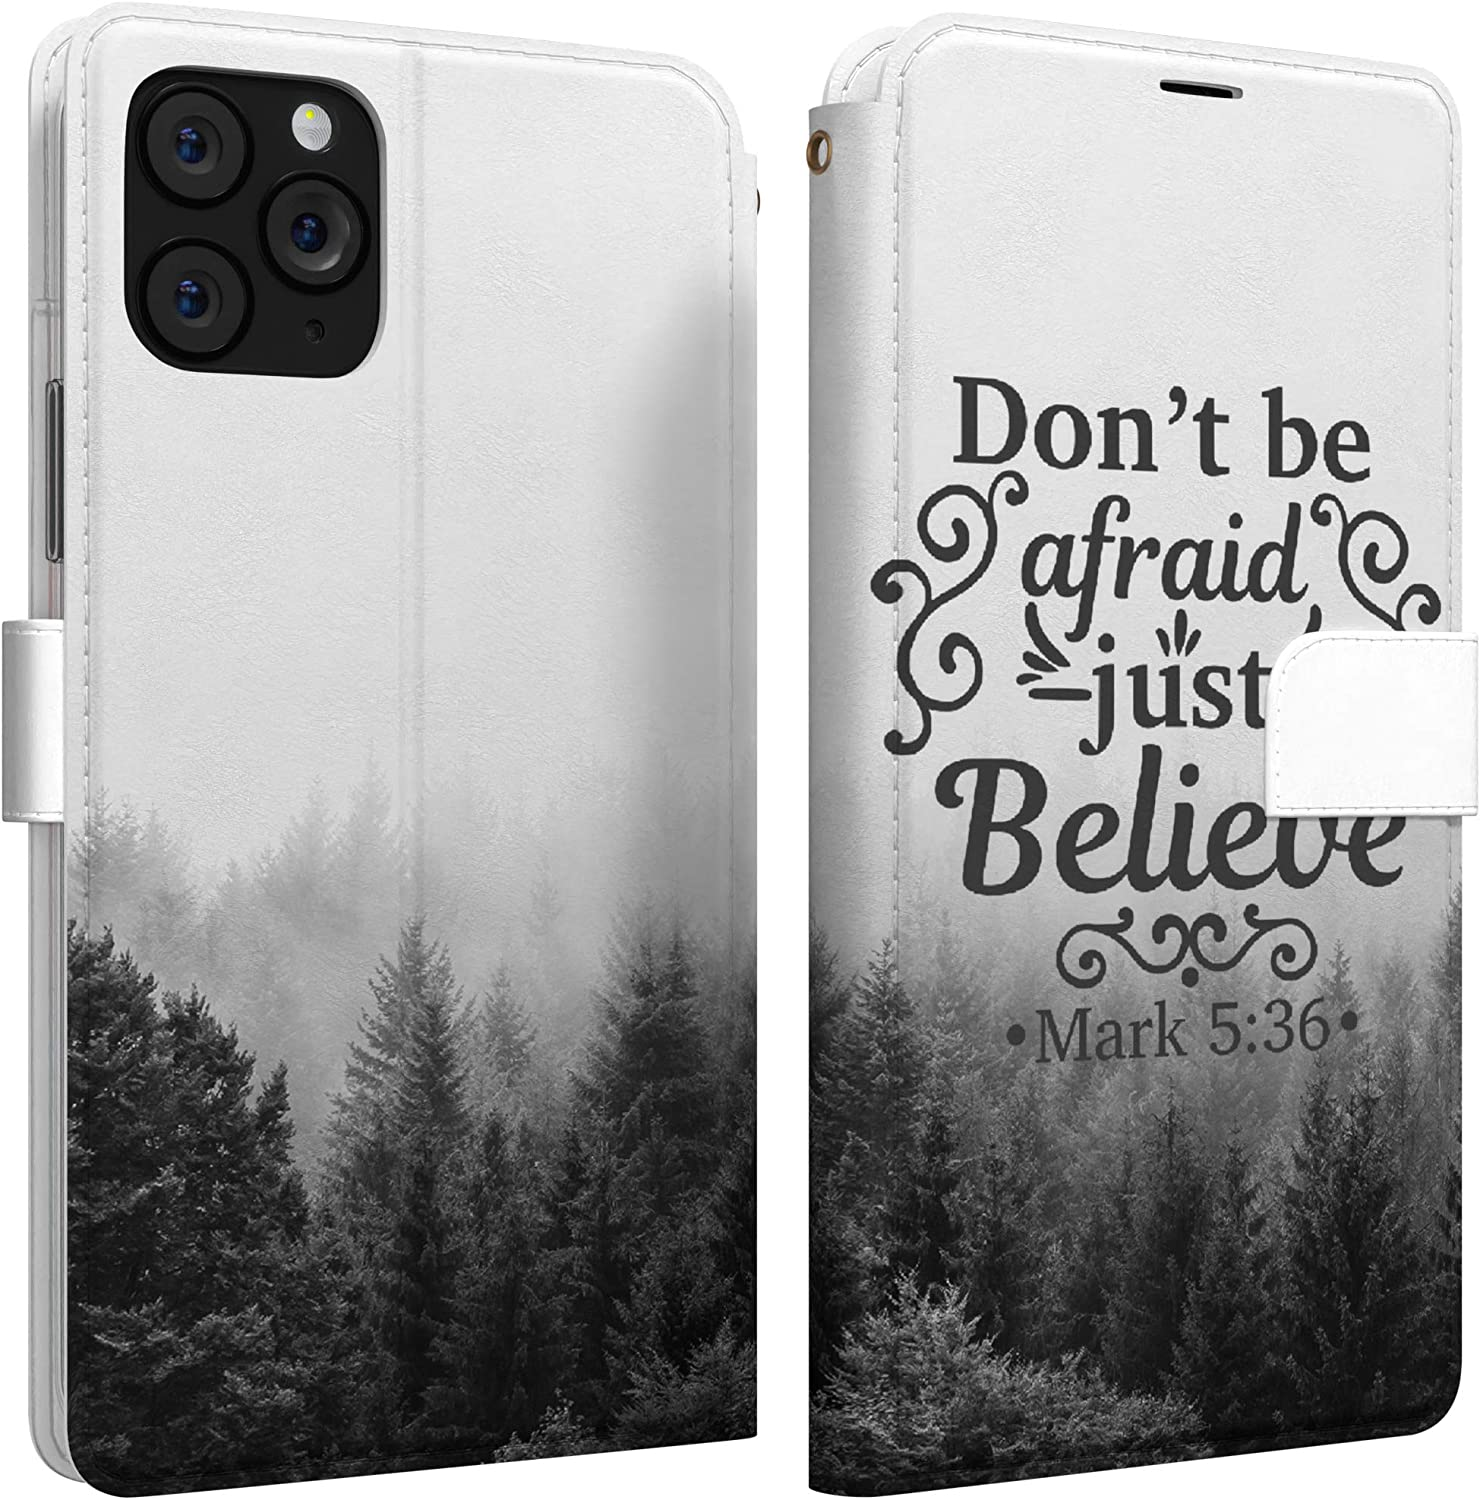 Mertak Wallet Case Compatible with iPhone 12 11 Pro Max SE Xr Xs X 8 Plus 7 6s Mark 5:36 Don't be Afraid Slim Fit Quote Lightweight Religious Cover Forest Bible Verse Flip Folio Card Holder Magnetic